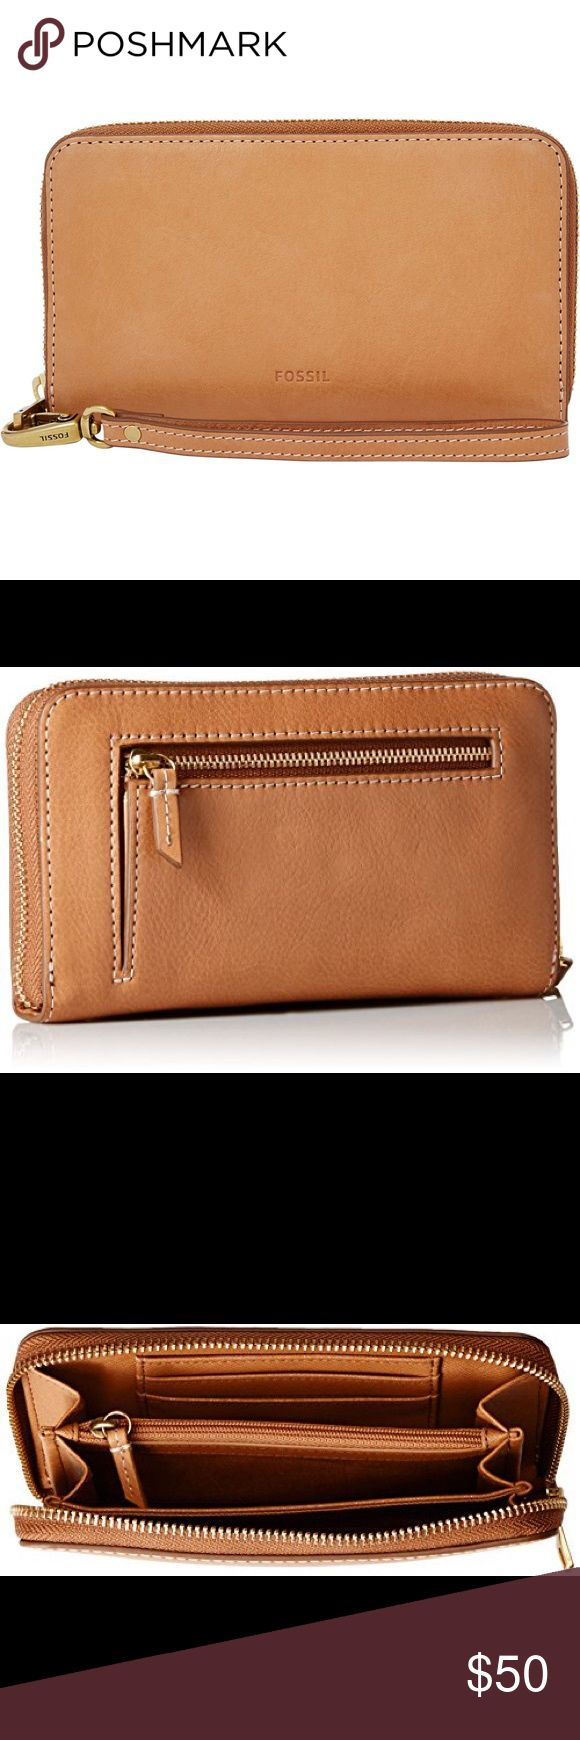 """FOSSIL SMARTPHONE WRISTLET ZIP AROUND WALLET ❤PRICE IS FIRM ❤NWT Fossil Emma Smartphone Wristlet. Will hold iPhone 6s, iPhone 7 in cases and other phones the same size or smaller. Color: Tan Material: Leather . Zip Around . Interior: Middle zipper compartment, cash slots, 3 RFID protected card slots. Exterior coin pocket . Gold tone hardware details . Measurements: 7"""" L 4""""H. Retail: $75. Fossil Bags Clutches & Wristlets"""